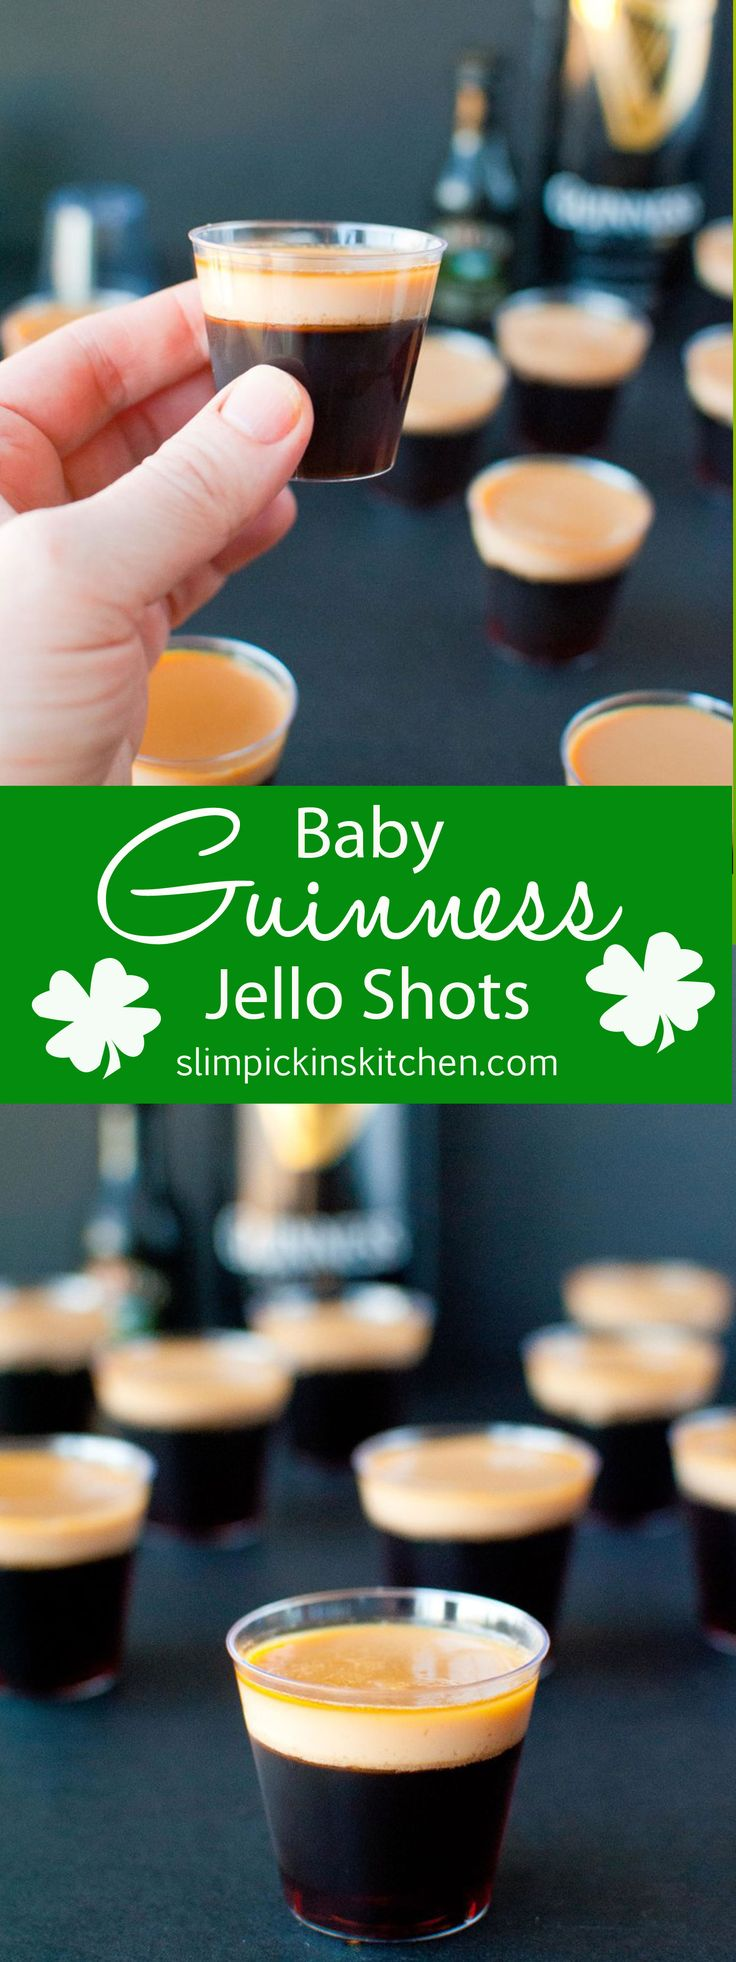 A fun and festive jello shot recipe that's perfect for St. Patrick's Day! Made with Bailey's Irish Cream and Guinness Stout, these jelly shots will have you dancing an Irish jig in no time!